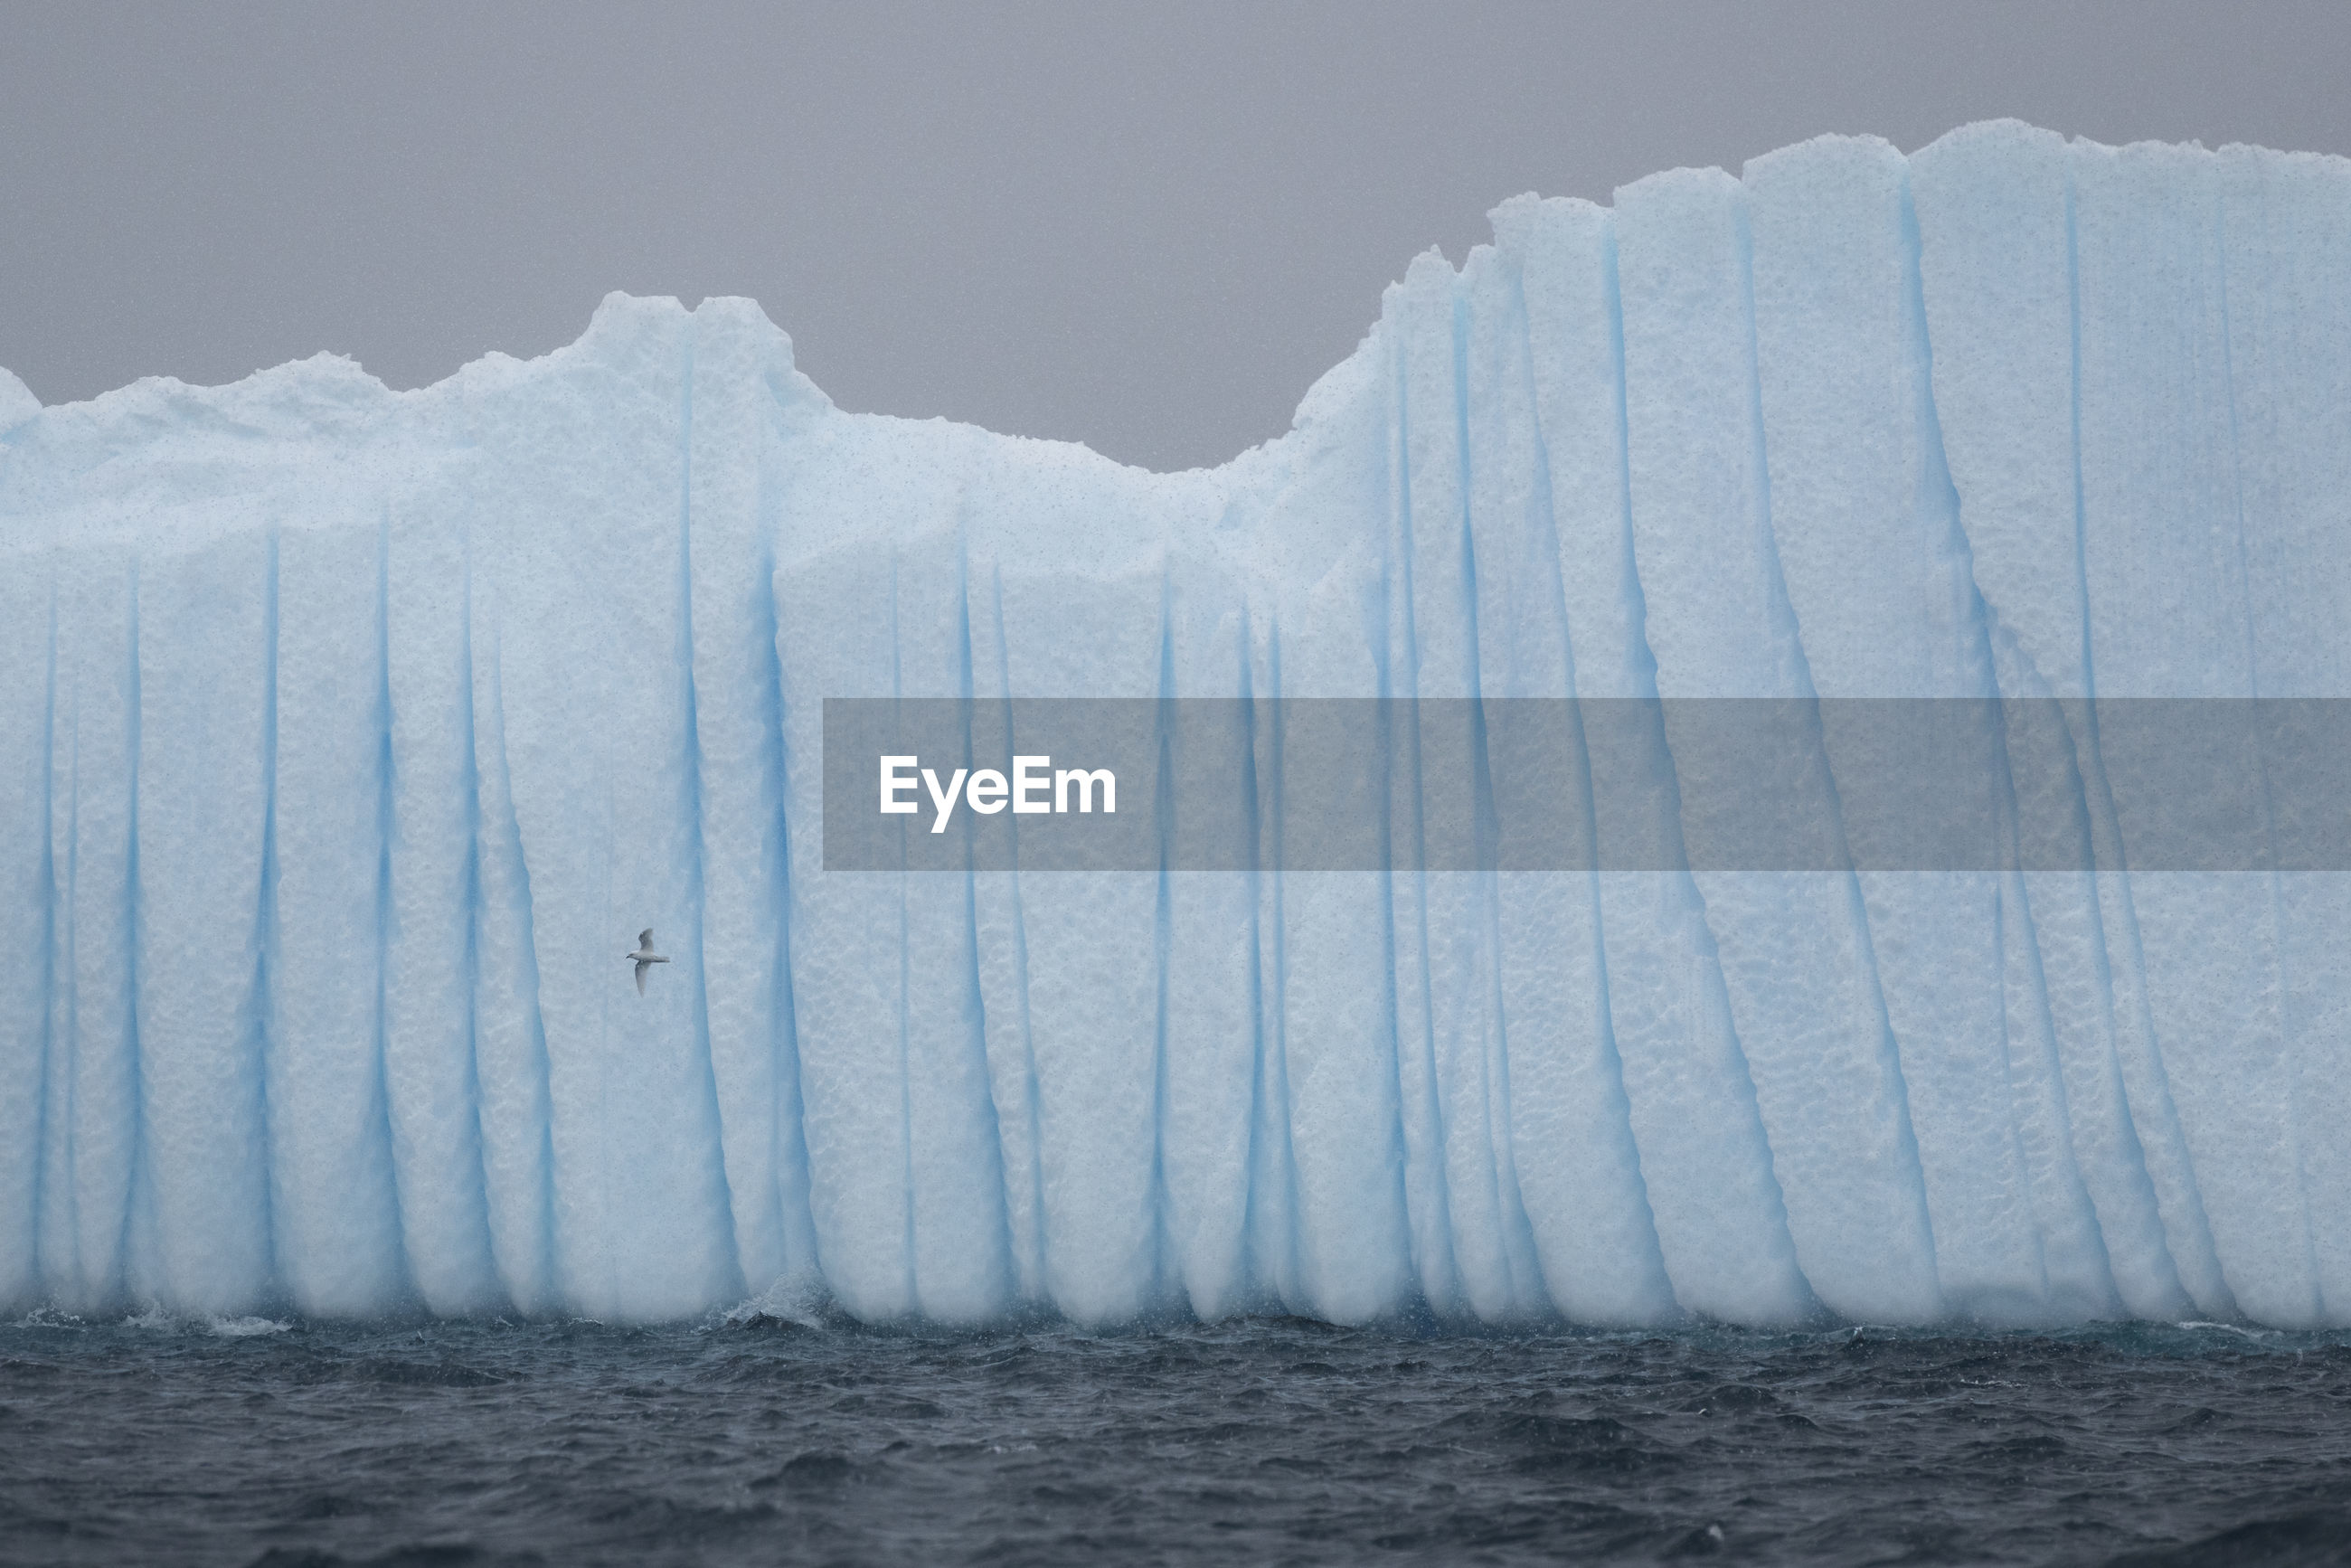 A snow petrel flying next to an iceberg in heavy snowfall outside brabant island, antarctica.